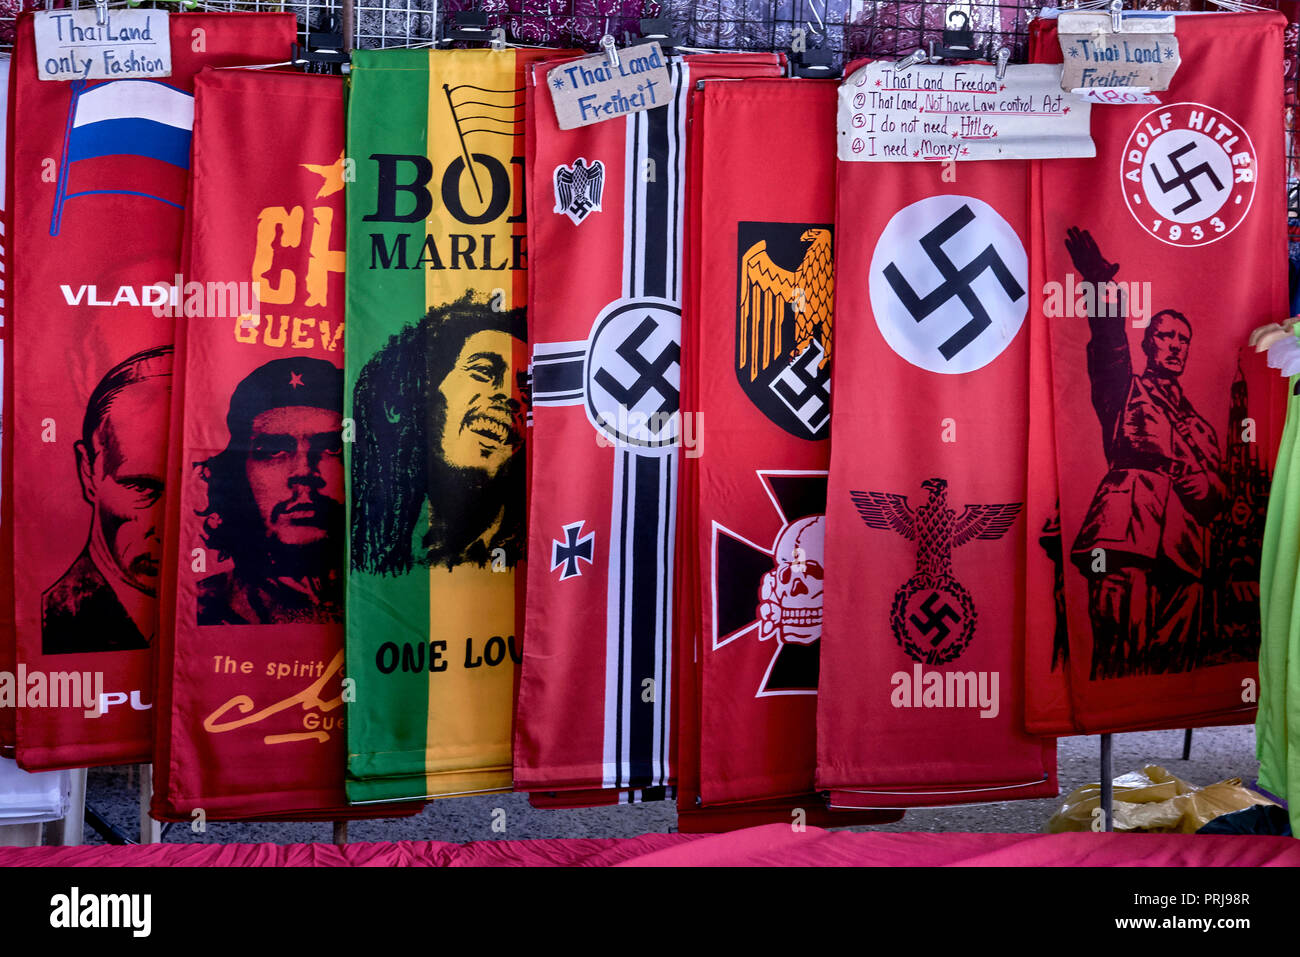 Nazi memorabilia and propaganda banners on sale at a Thailand market. Pattaya Southeast Asia. The vendor is aware of the controversy - Stock Image